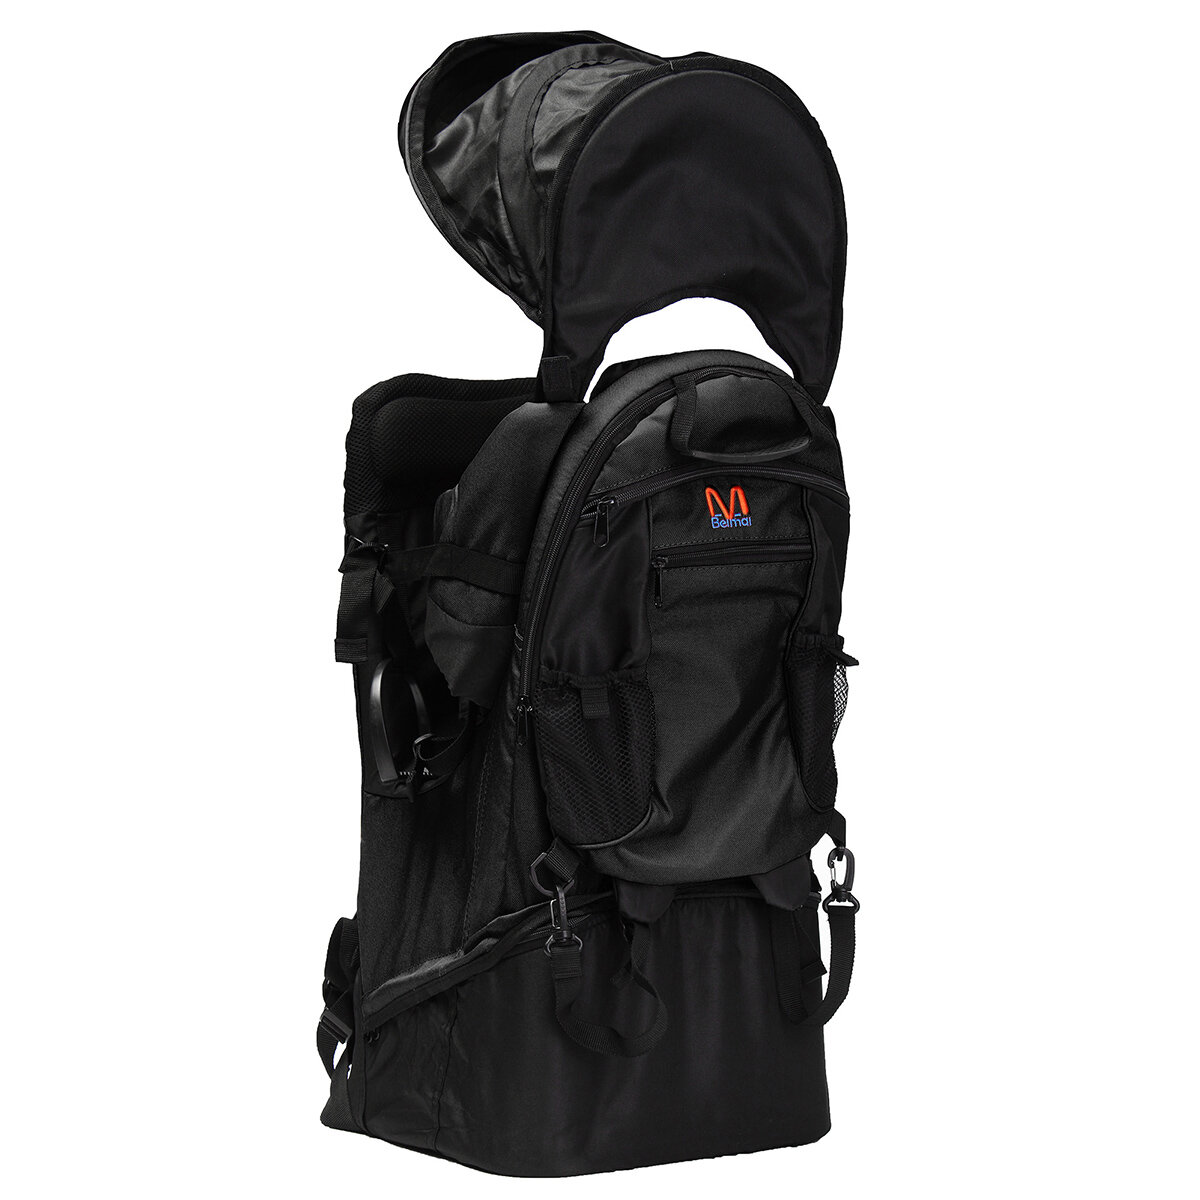 Outdoor Hiking Walking Children Carrier Backpack Baby Child Kid Carrying  Rucksack With Sun Canopy COD c8af970f4cf31